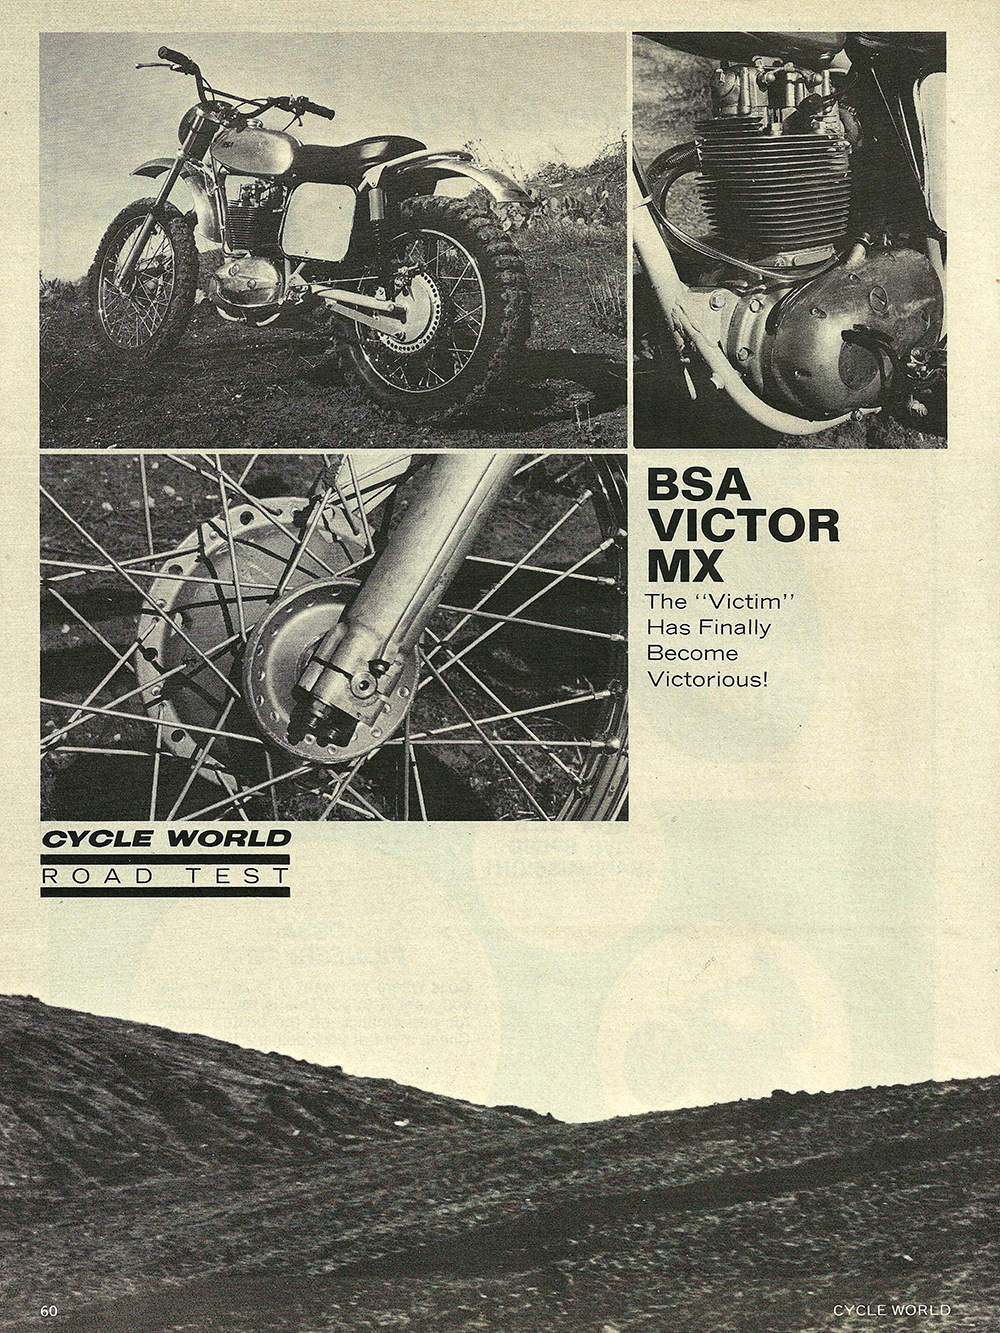 1971 BSA Victor MX road test 01.jpg